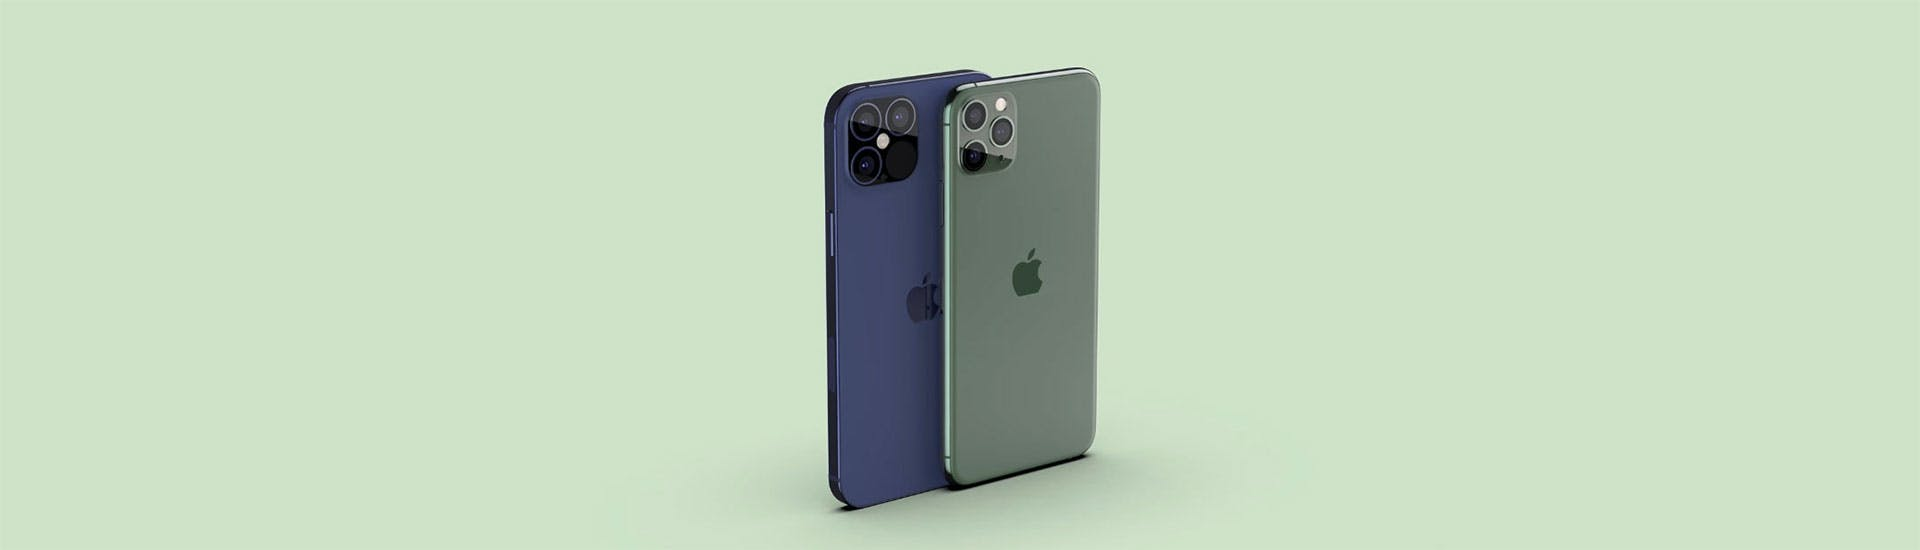 iPhone 12 -puhelimen mockup (kuva: EverythingApplePro)